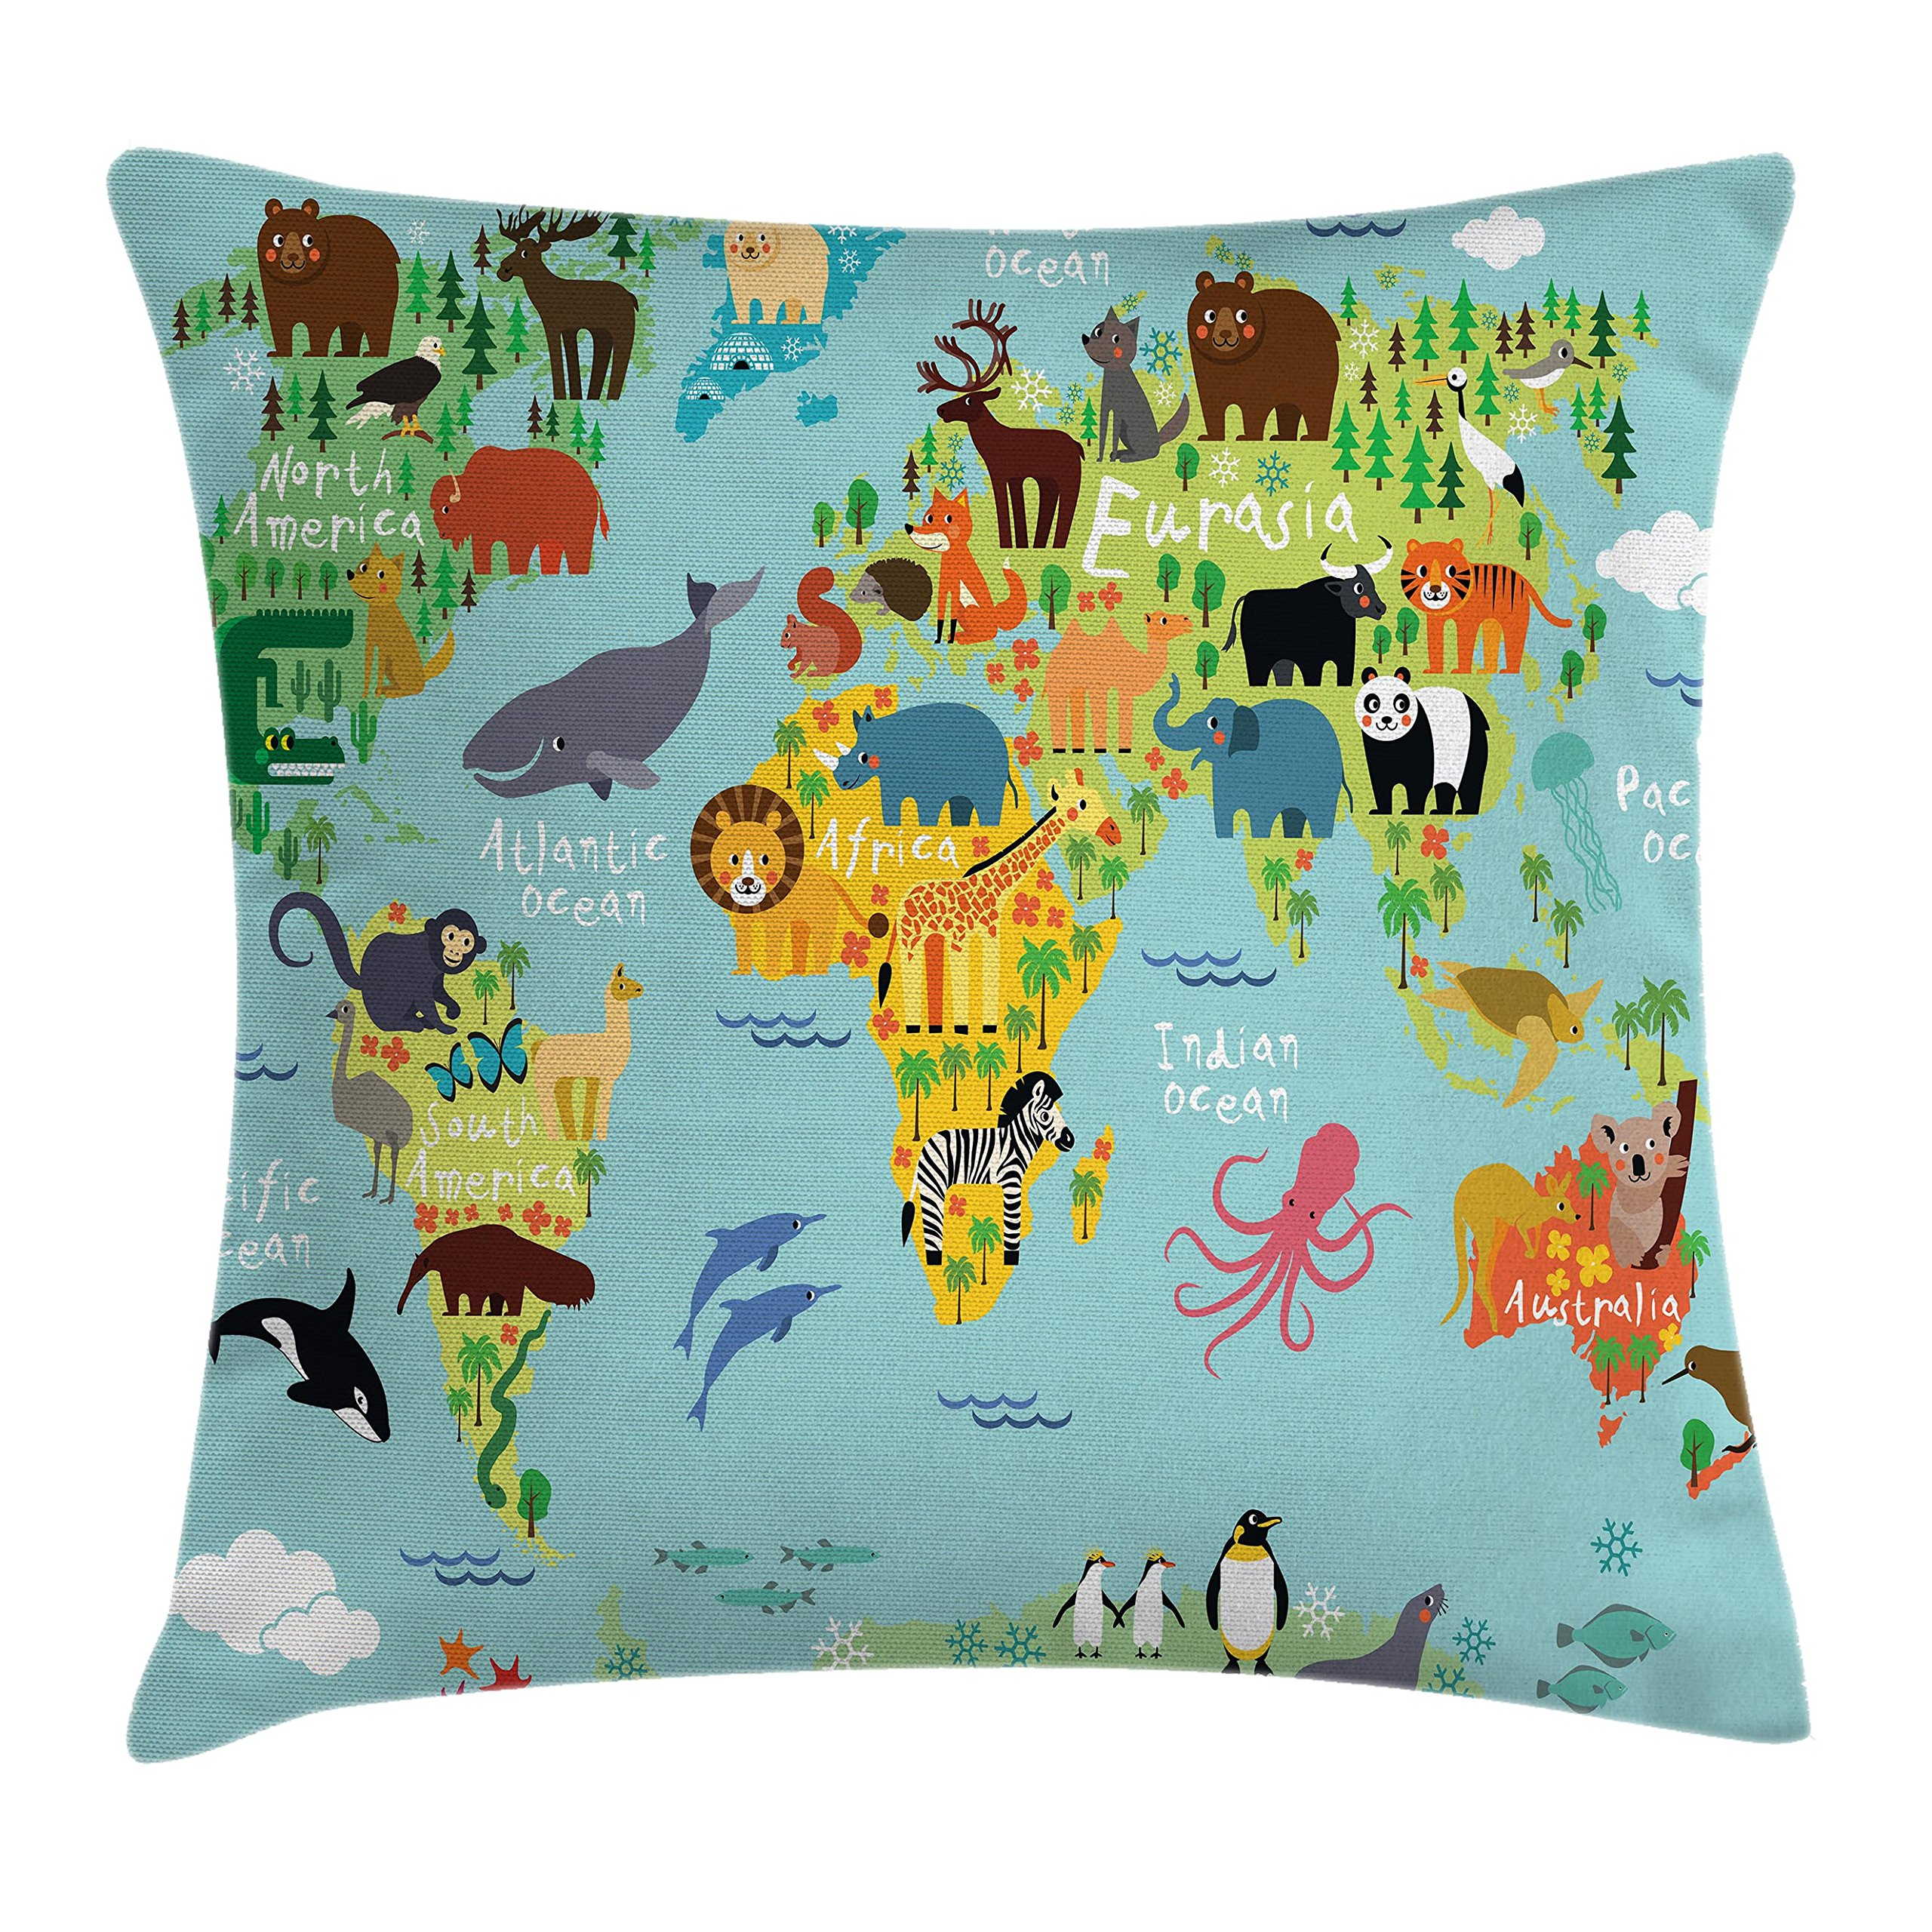 Ambesonne Wanderlust Throw Pillow Cushion Cover, Animal Map of The World for Children and Kids Cartoon Mountains Forests, Decorative Square Accent Pillow Case, 20 X 20 Inches, Aqua Blue and White